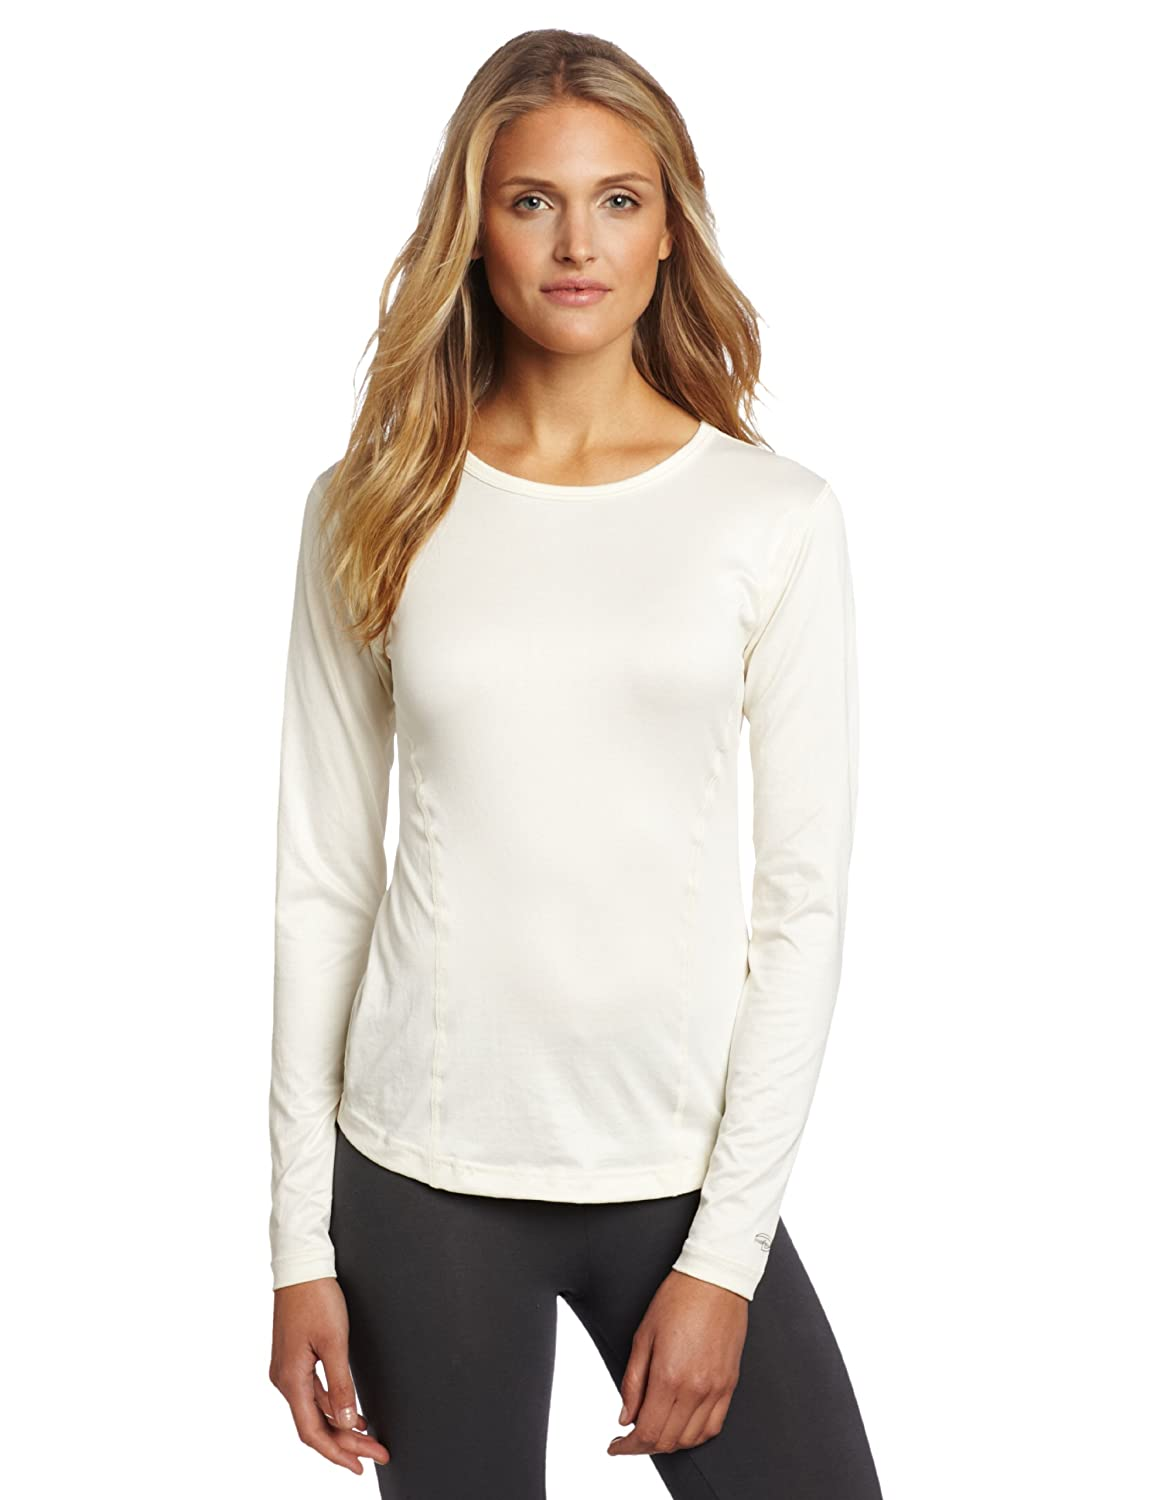 Duofold Women's Light Weight Veritherm Thermal Shirt KMC3